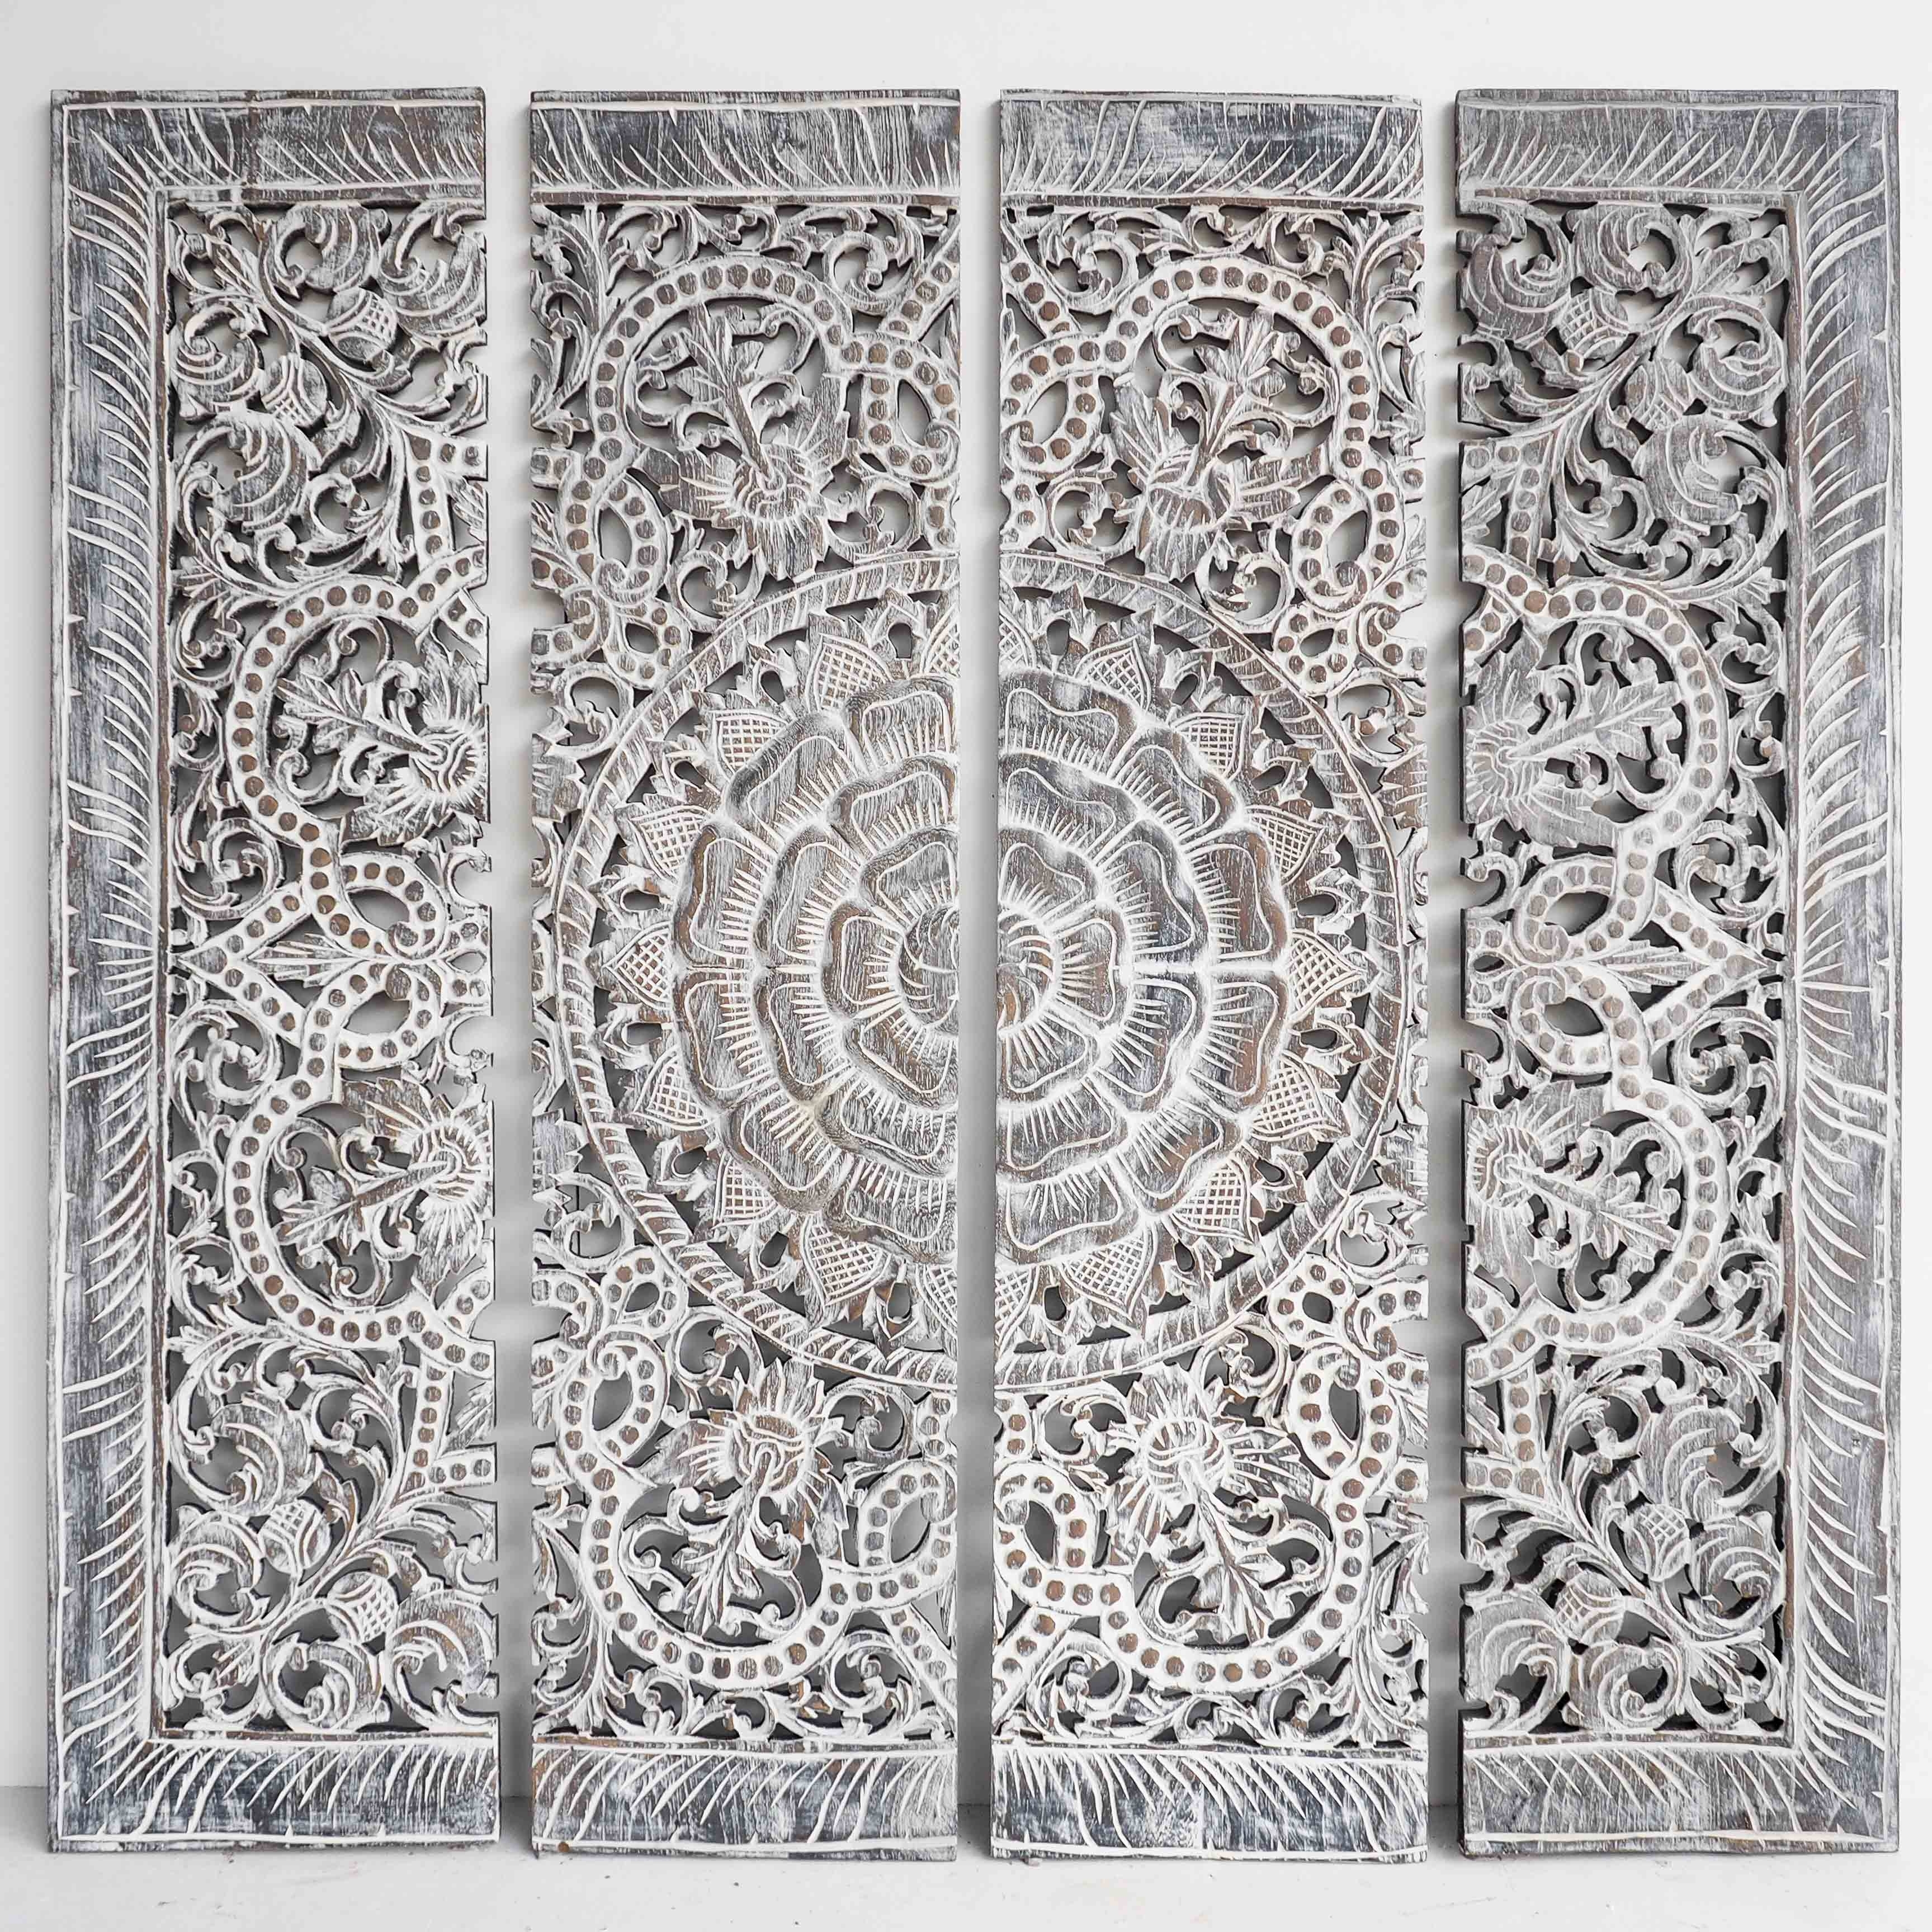 Buy Mandala Wood Carving Wall Art Paneling, Wooden Carved Headboard Throughout Wood Carved Wall Art (View 2 of 20)